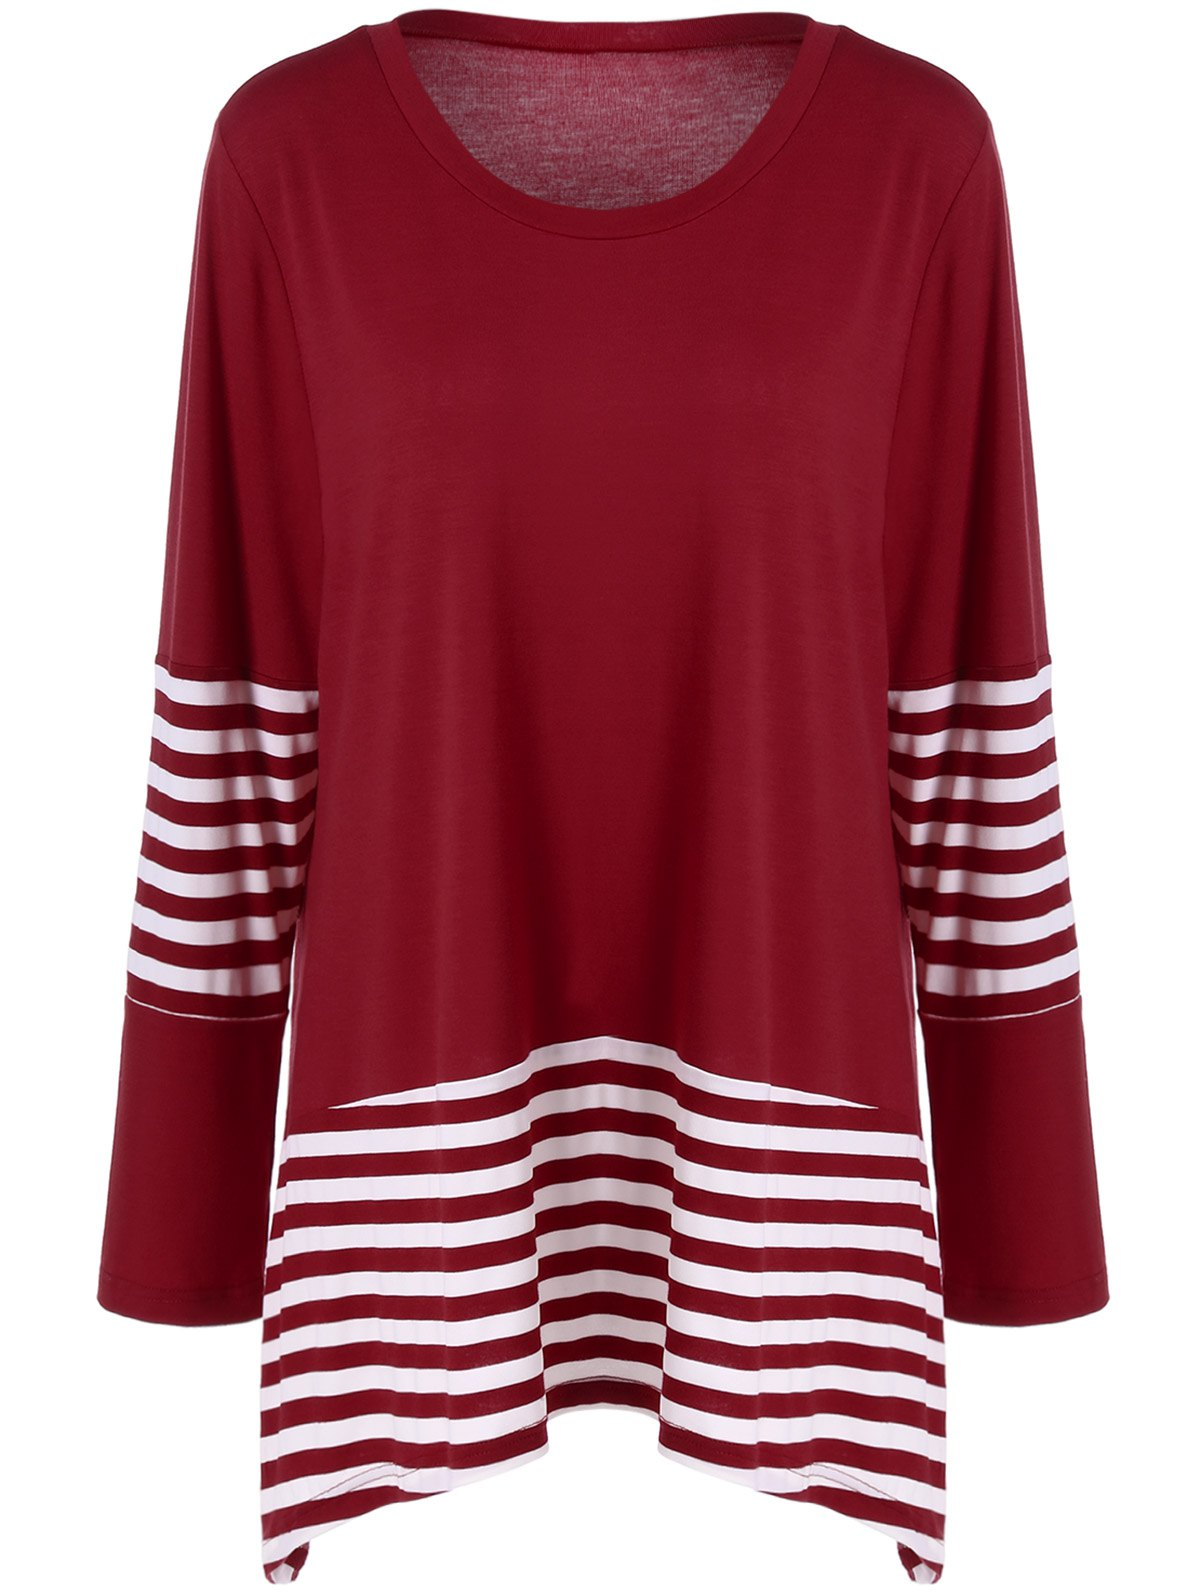 Plus Size Striped Panel T-Shirt - RED/WHITE 2XL